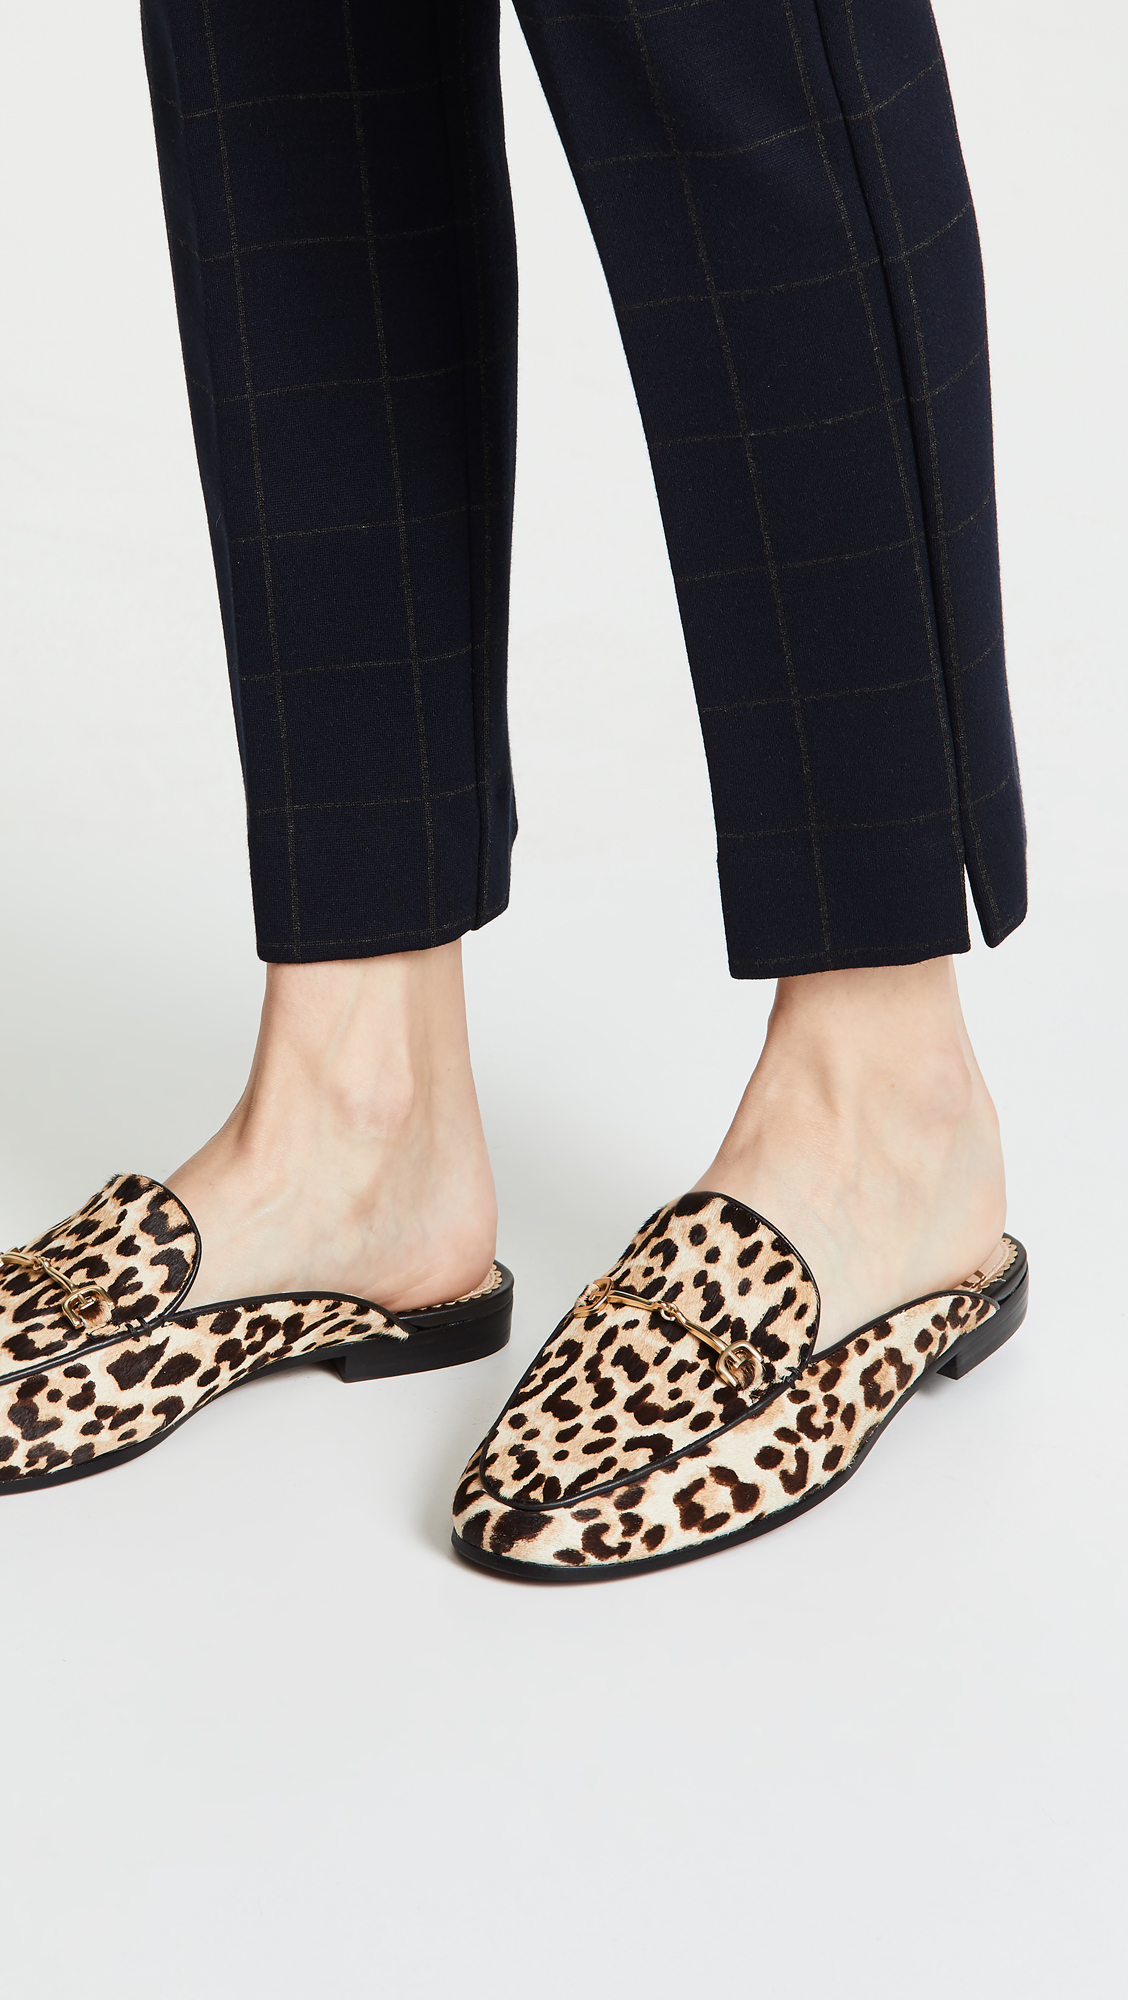 Leopard Print Mules with Gold Bar